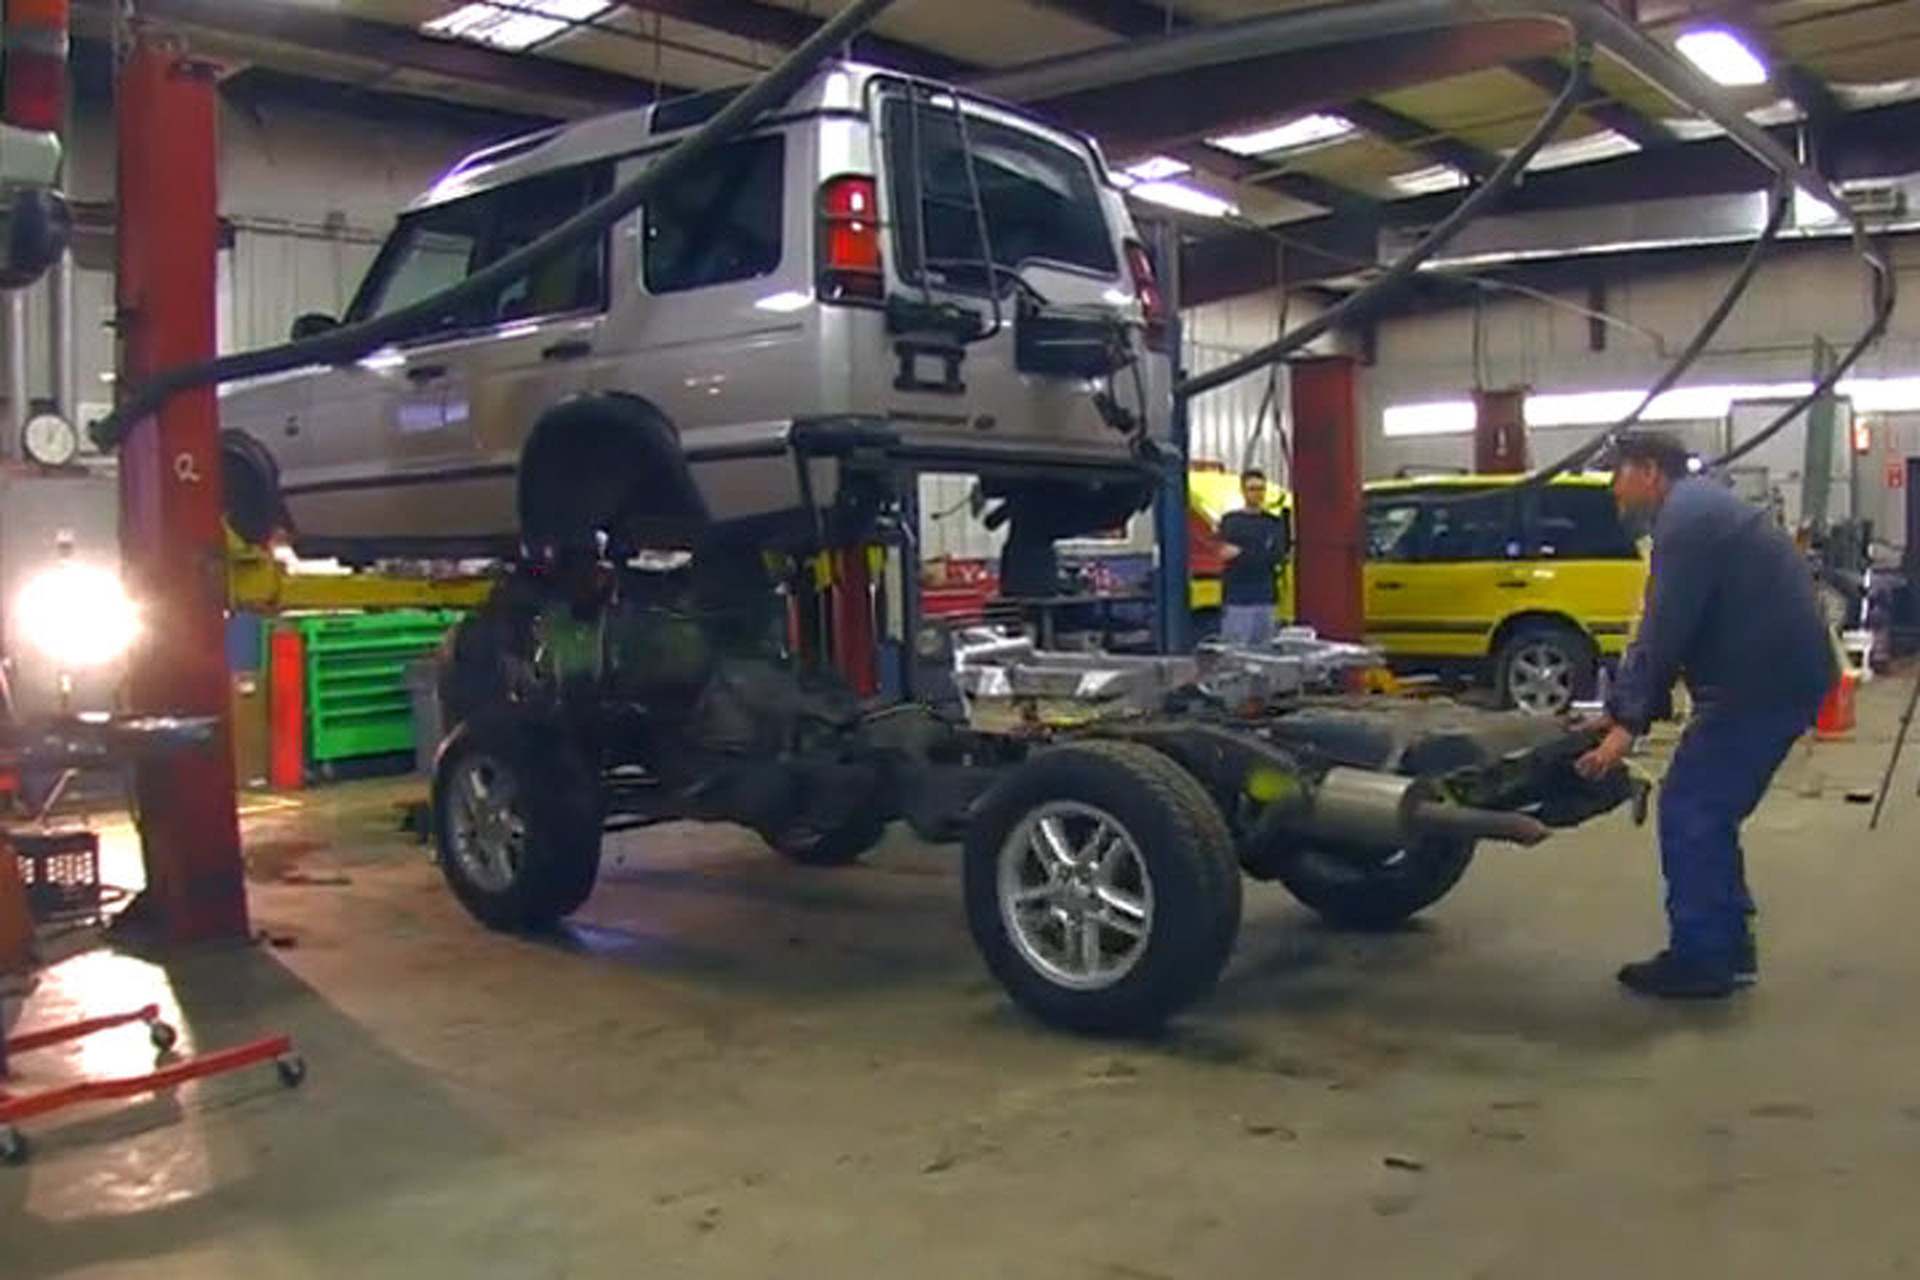 How to Swap A Land Rover Discovery Frame in Just 4 Minutes [video]